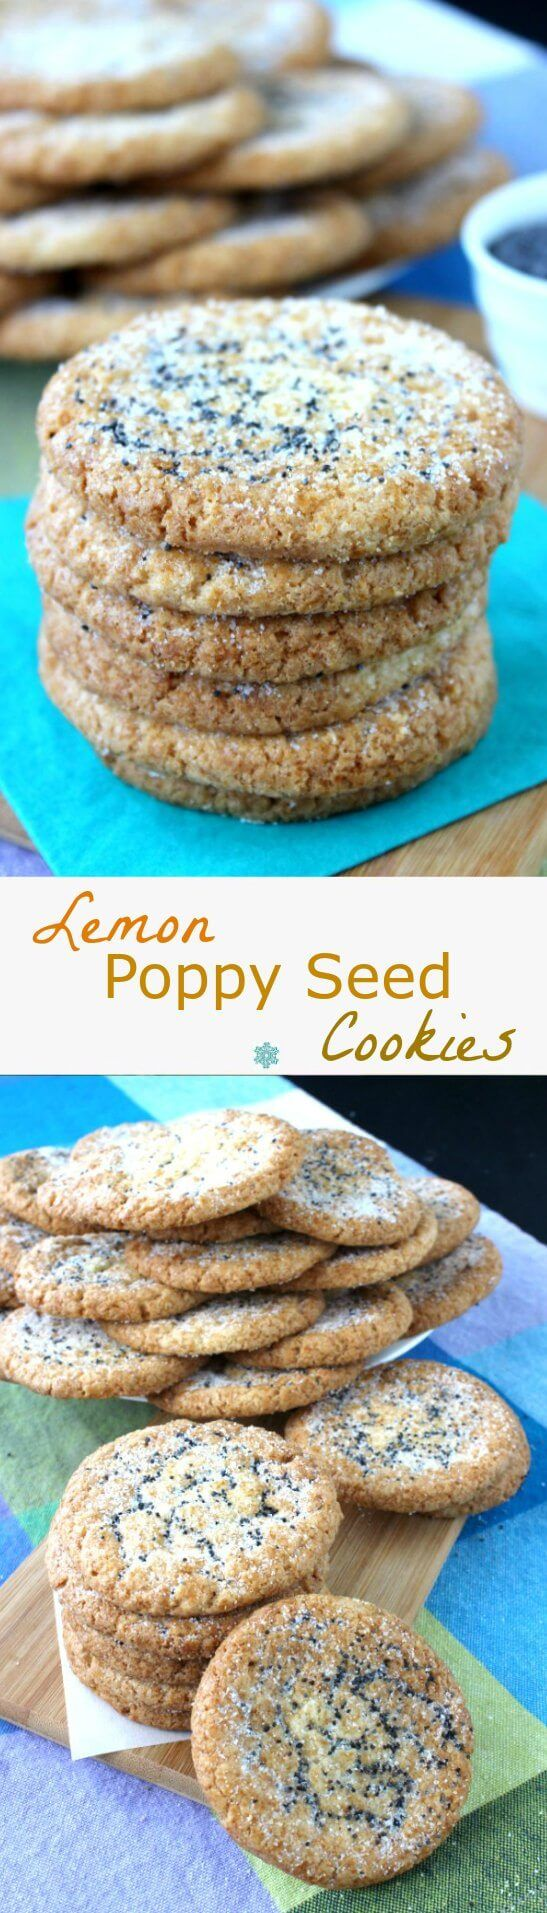 poppy seed lemon cake poppy seed bread with glaze poppy seed cookies ...